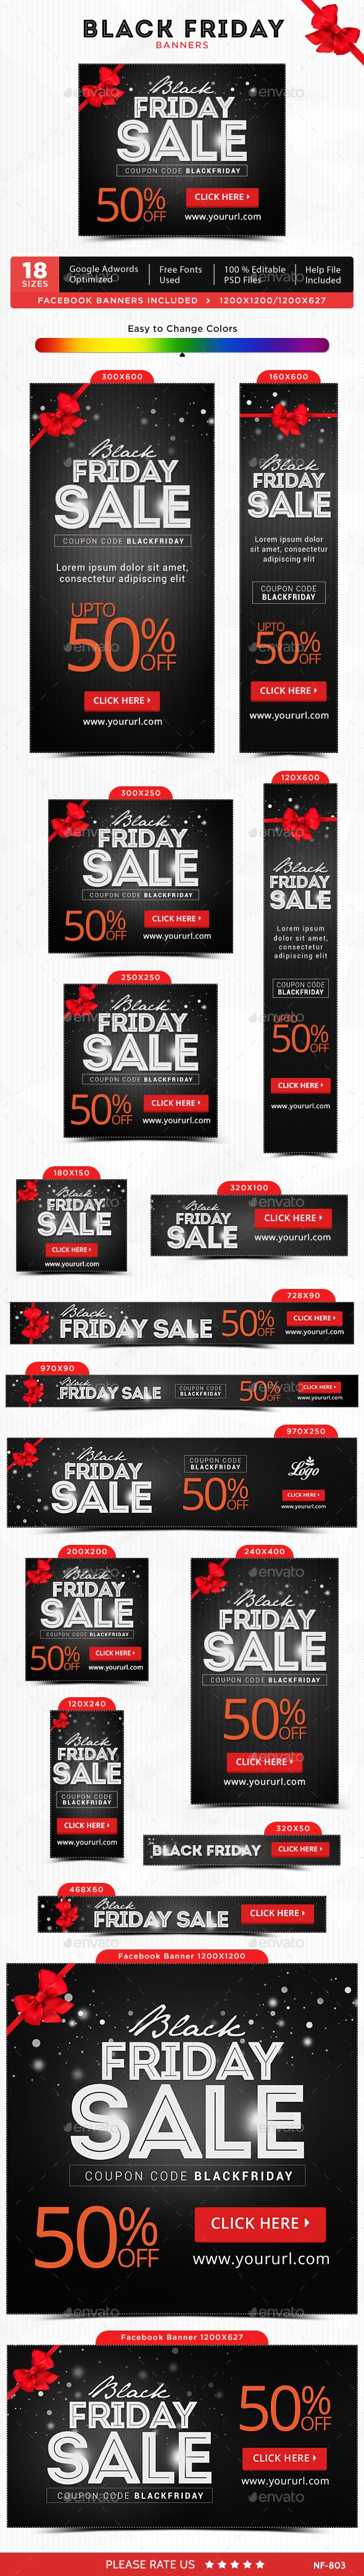 Black Friday Banners — Photoshop PSD #deal #animated banner • Available here → https://graphicriver.net/item/black-friday-banners/13541953?ref=pxcr